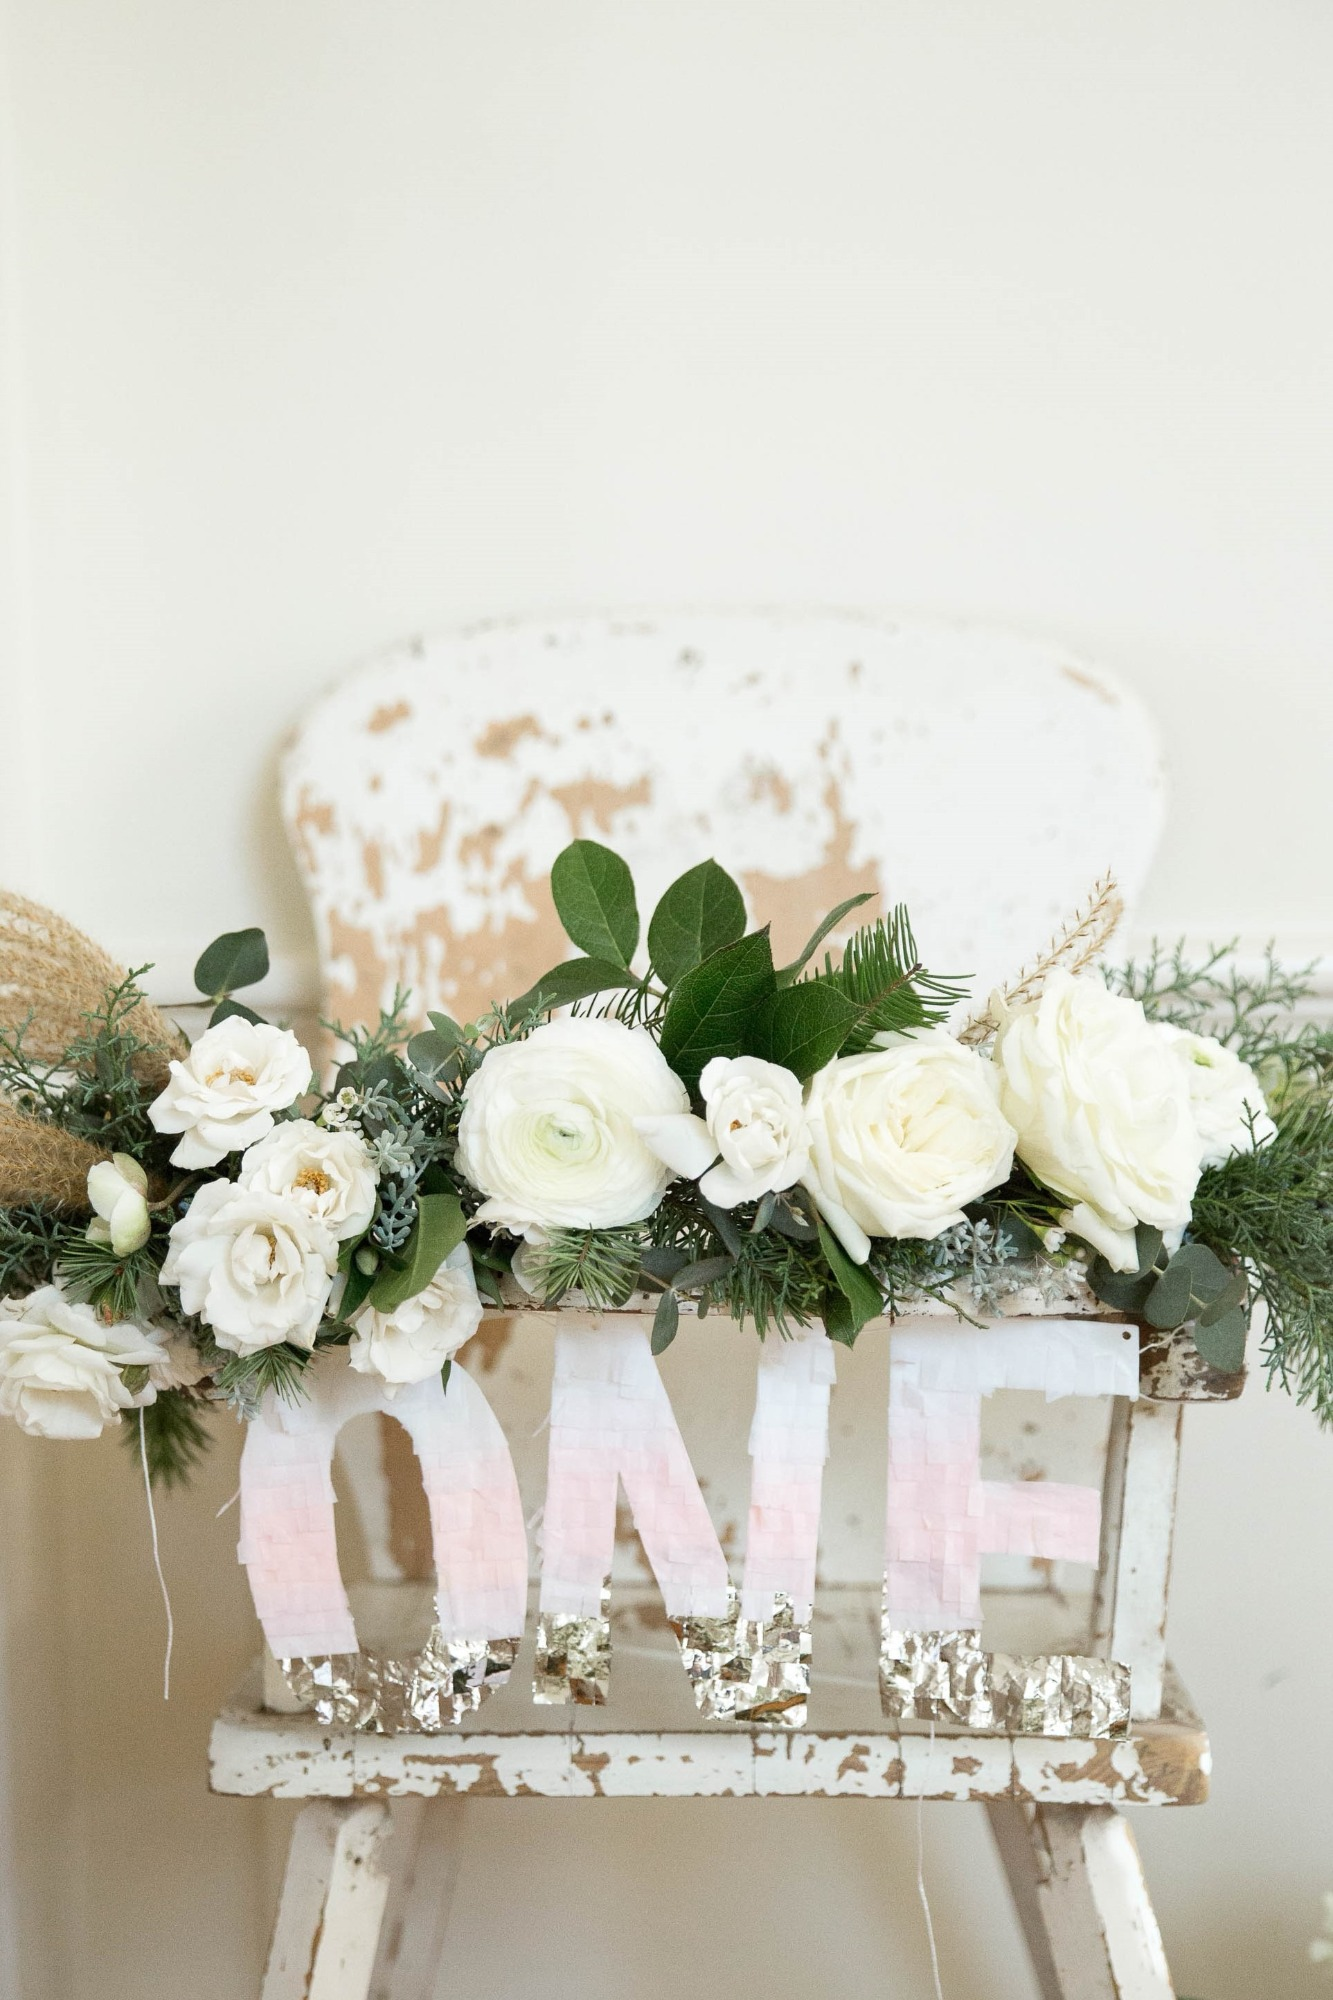 Florals from Snowy Birthday Soiree Styled by Deets & Things | Black Twine